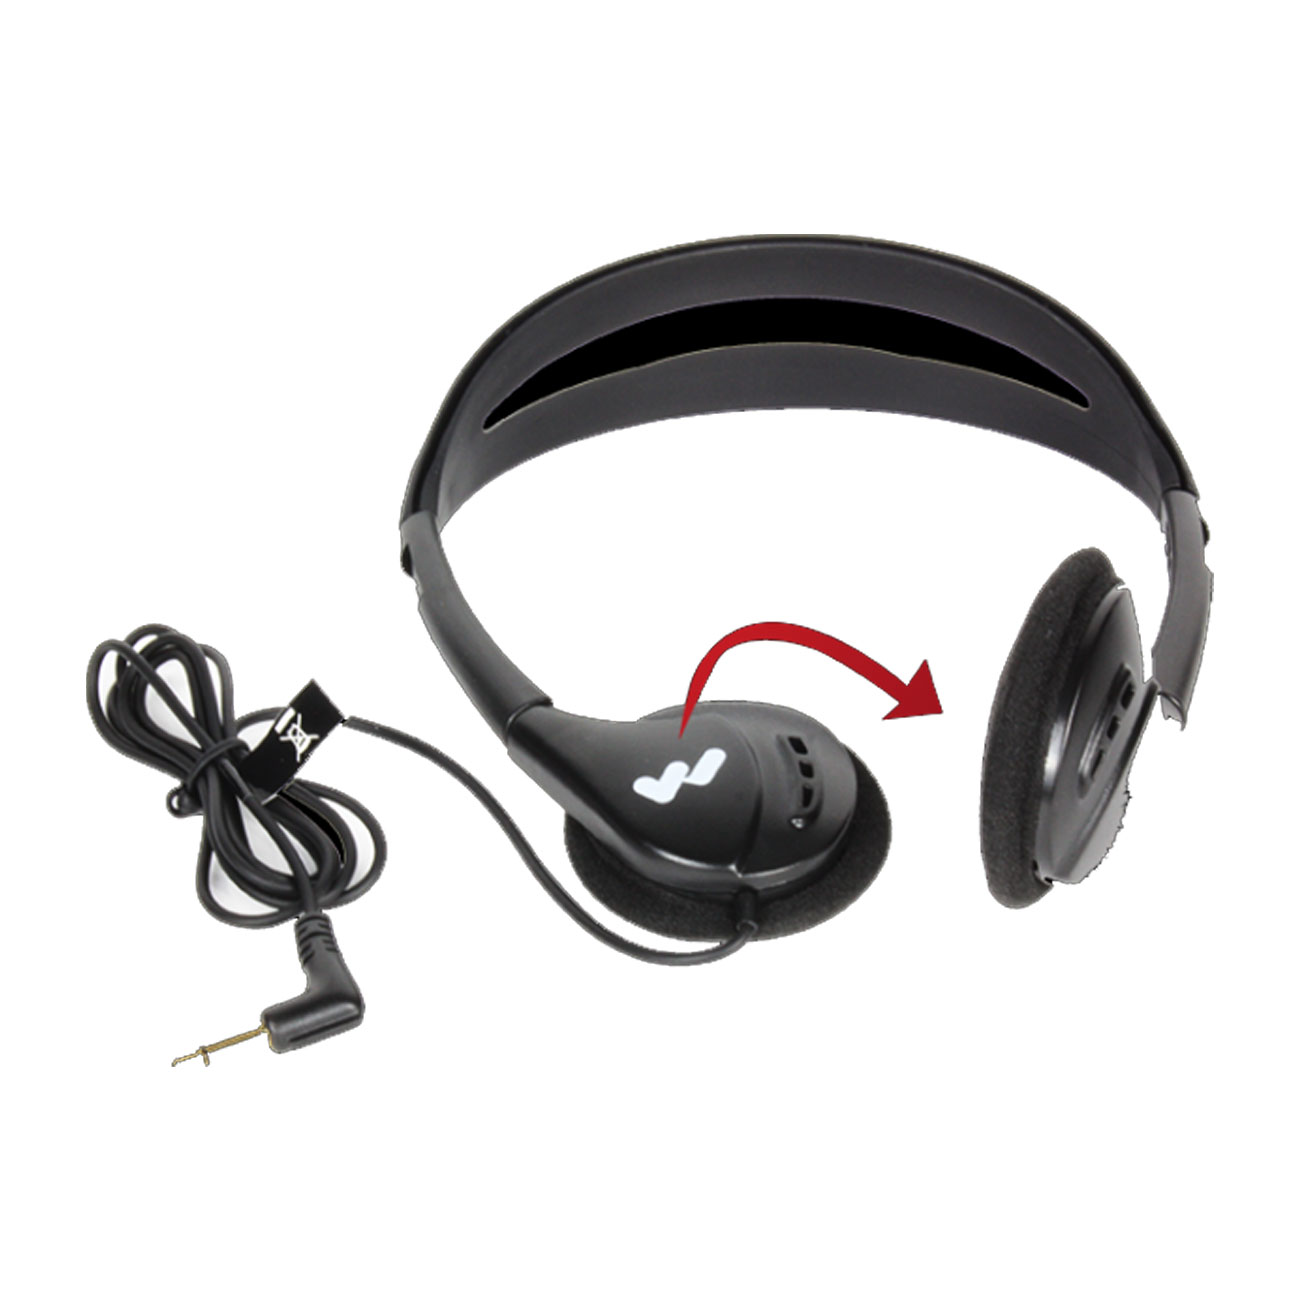 Deluxe Folding Headphone - (Adult) Price: $15.50